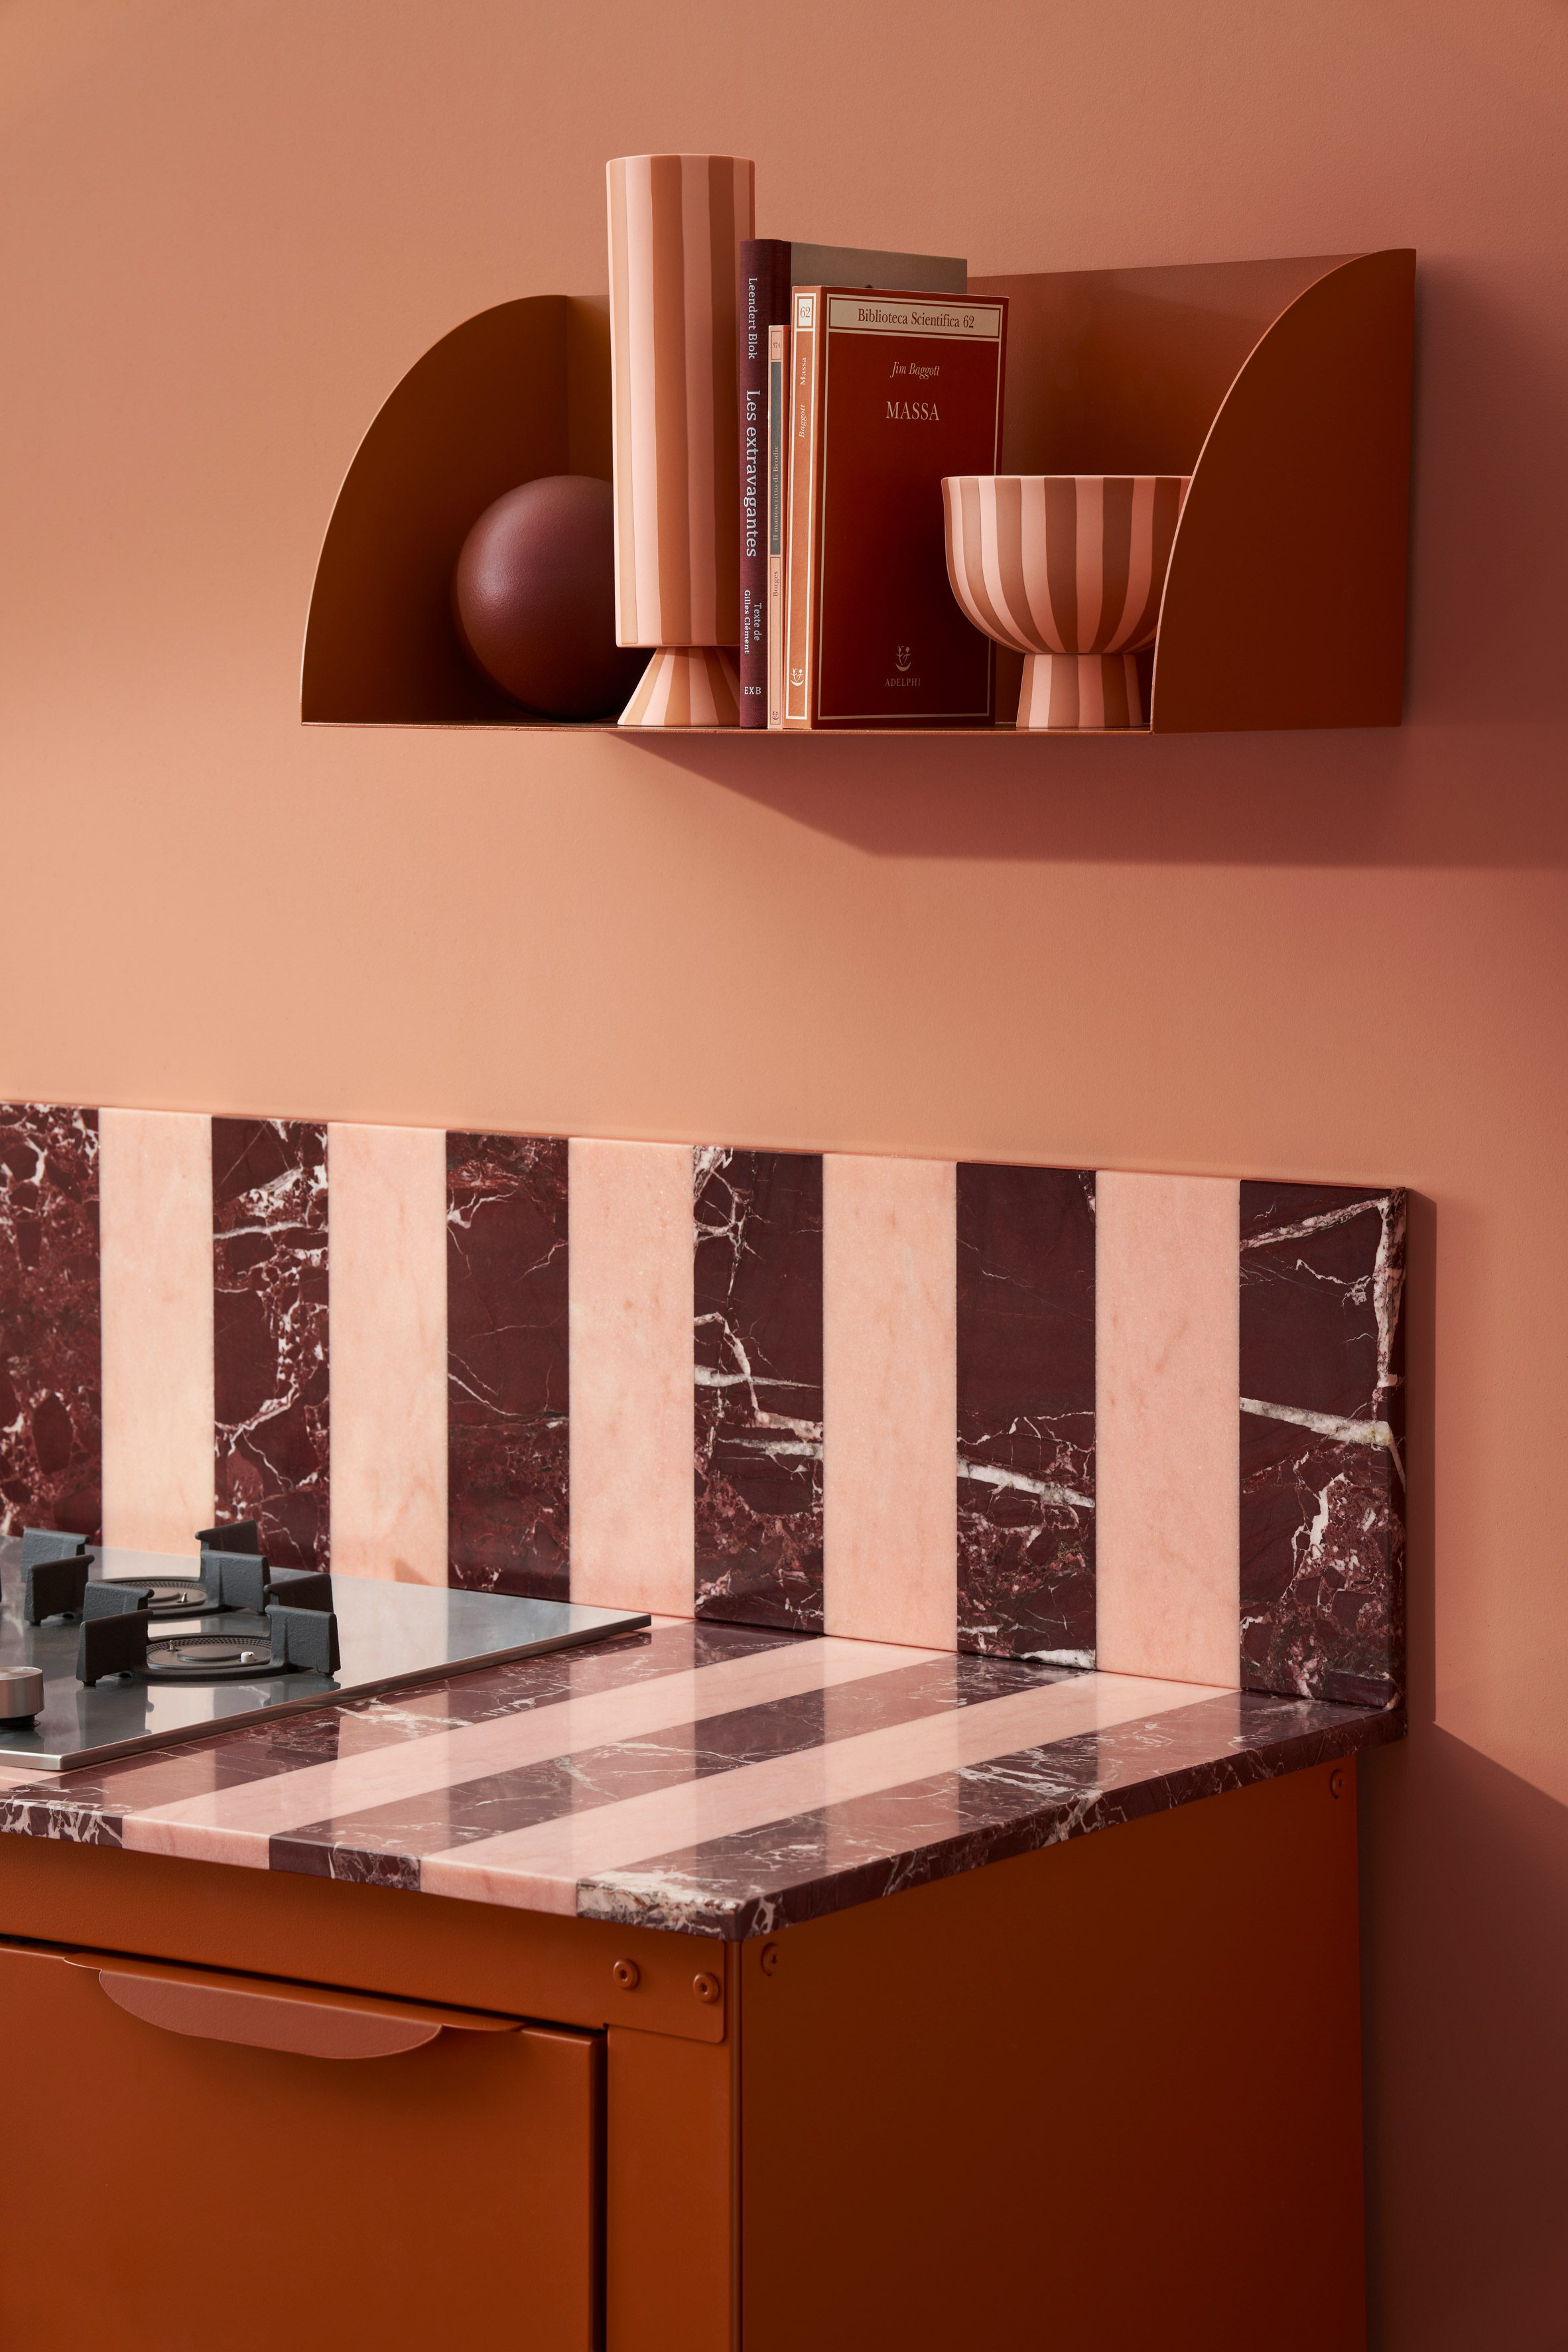 A striped marble counter top